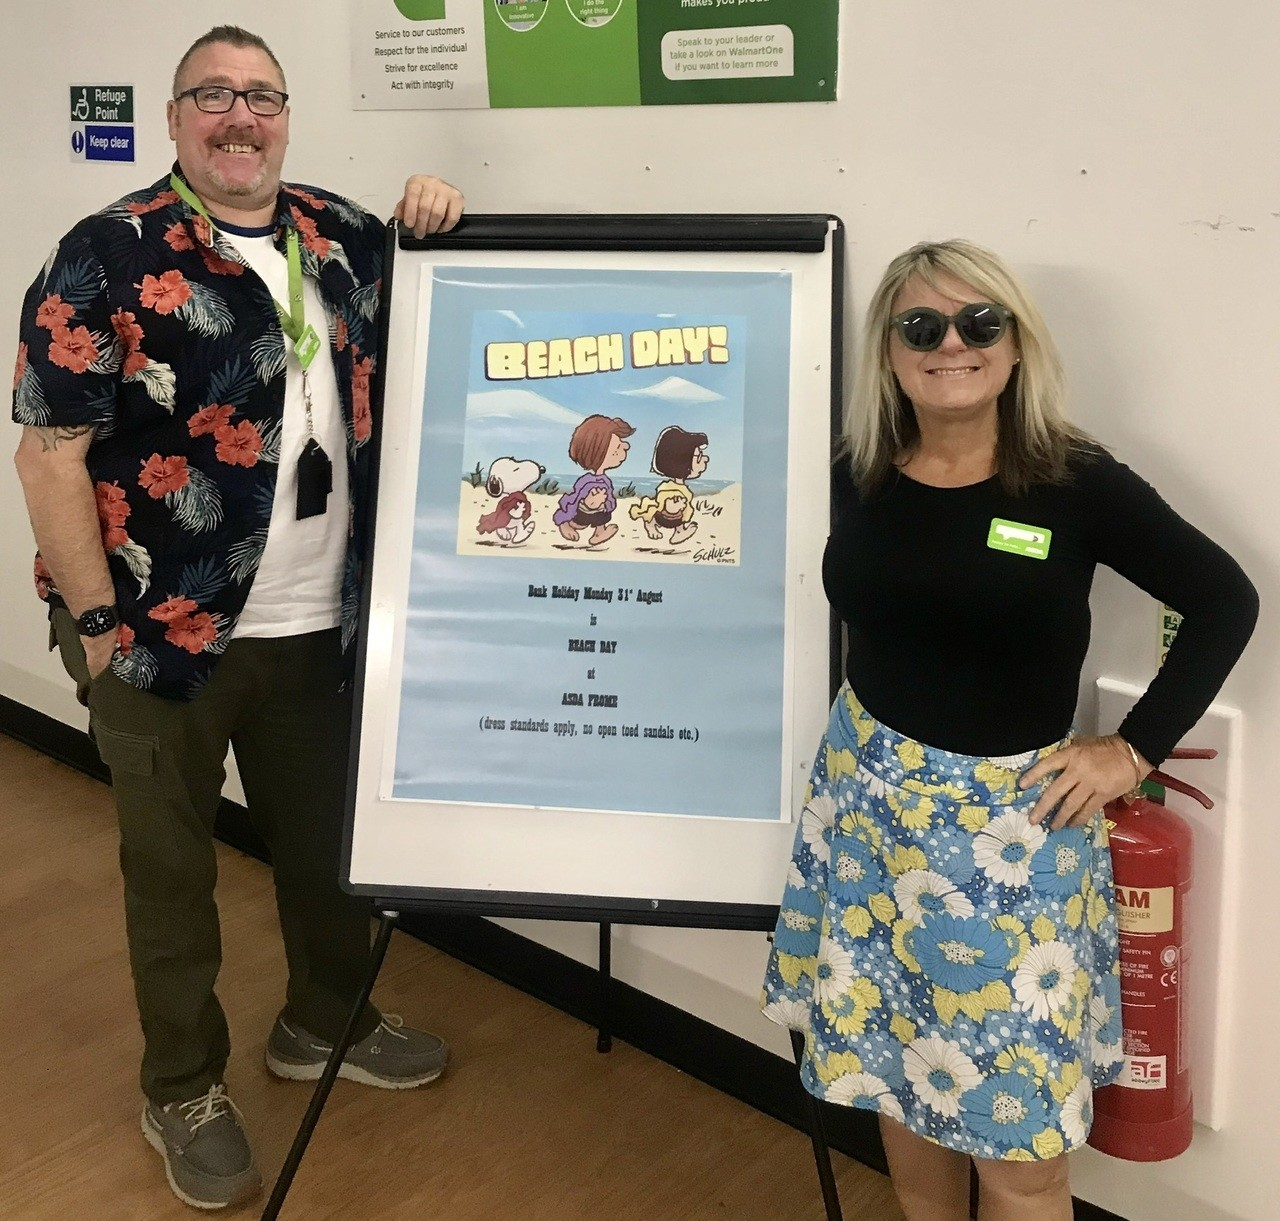 Beach Day at Asda Frome  | Asda Frome